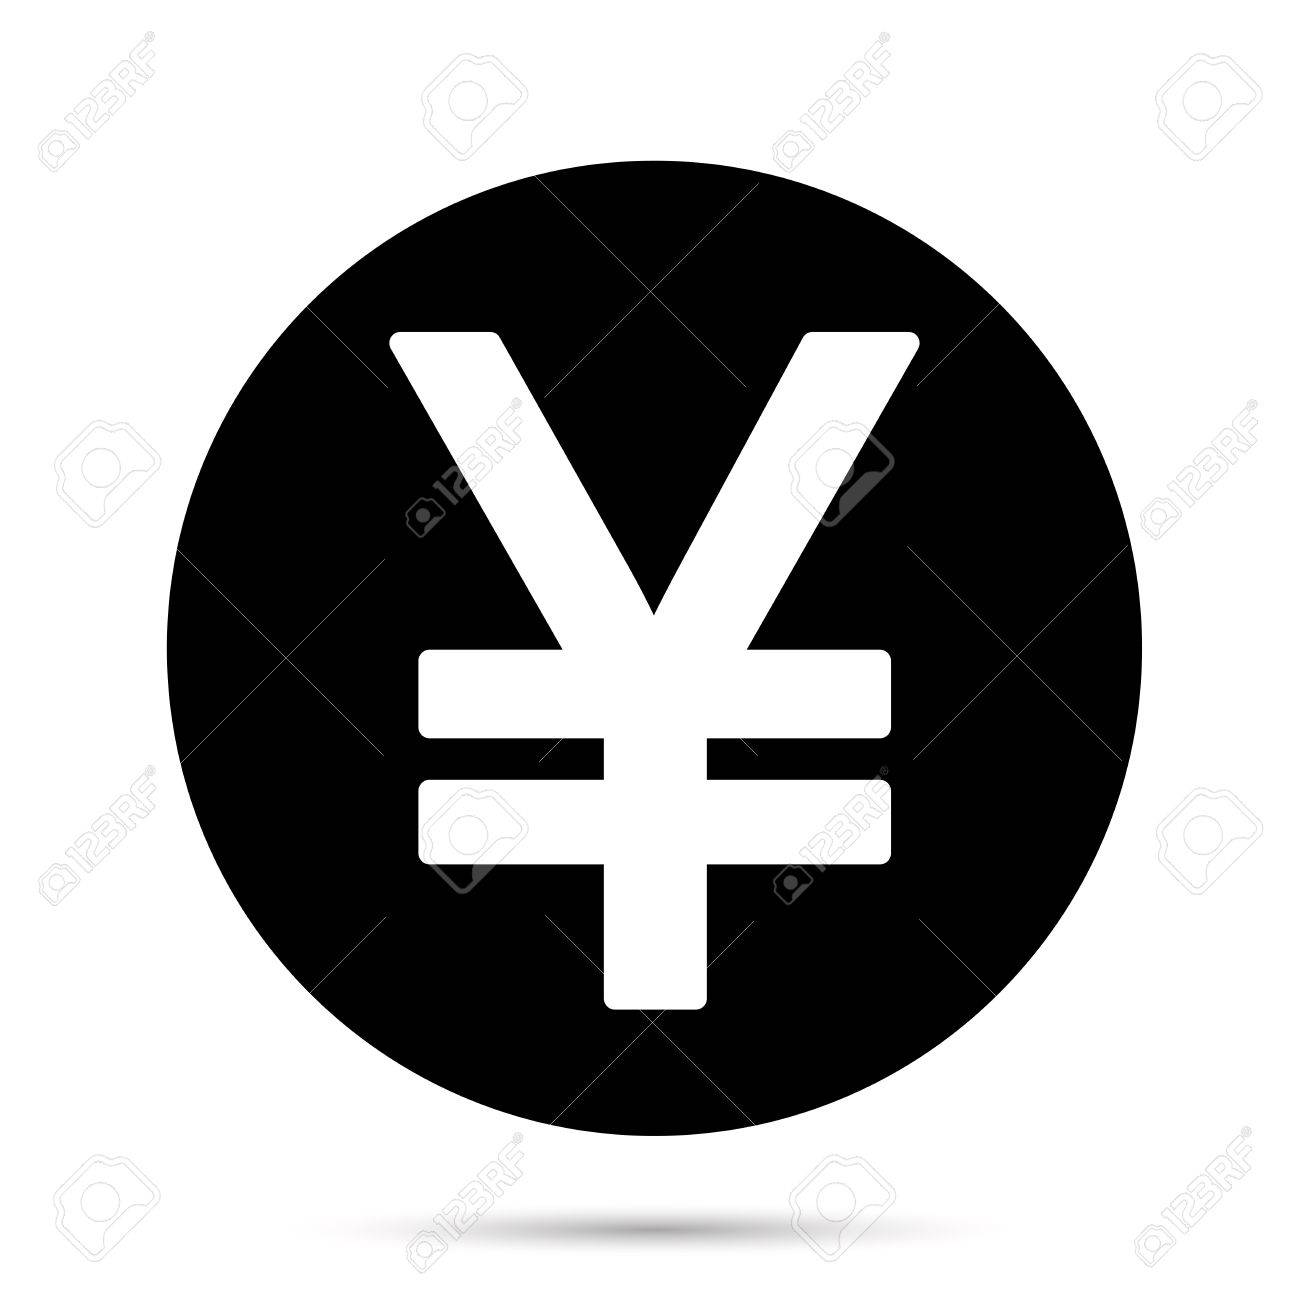 Japanese Yen Or Chinese Yuan Currency Symbol Royalty Free Kliparty